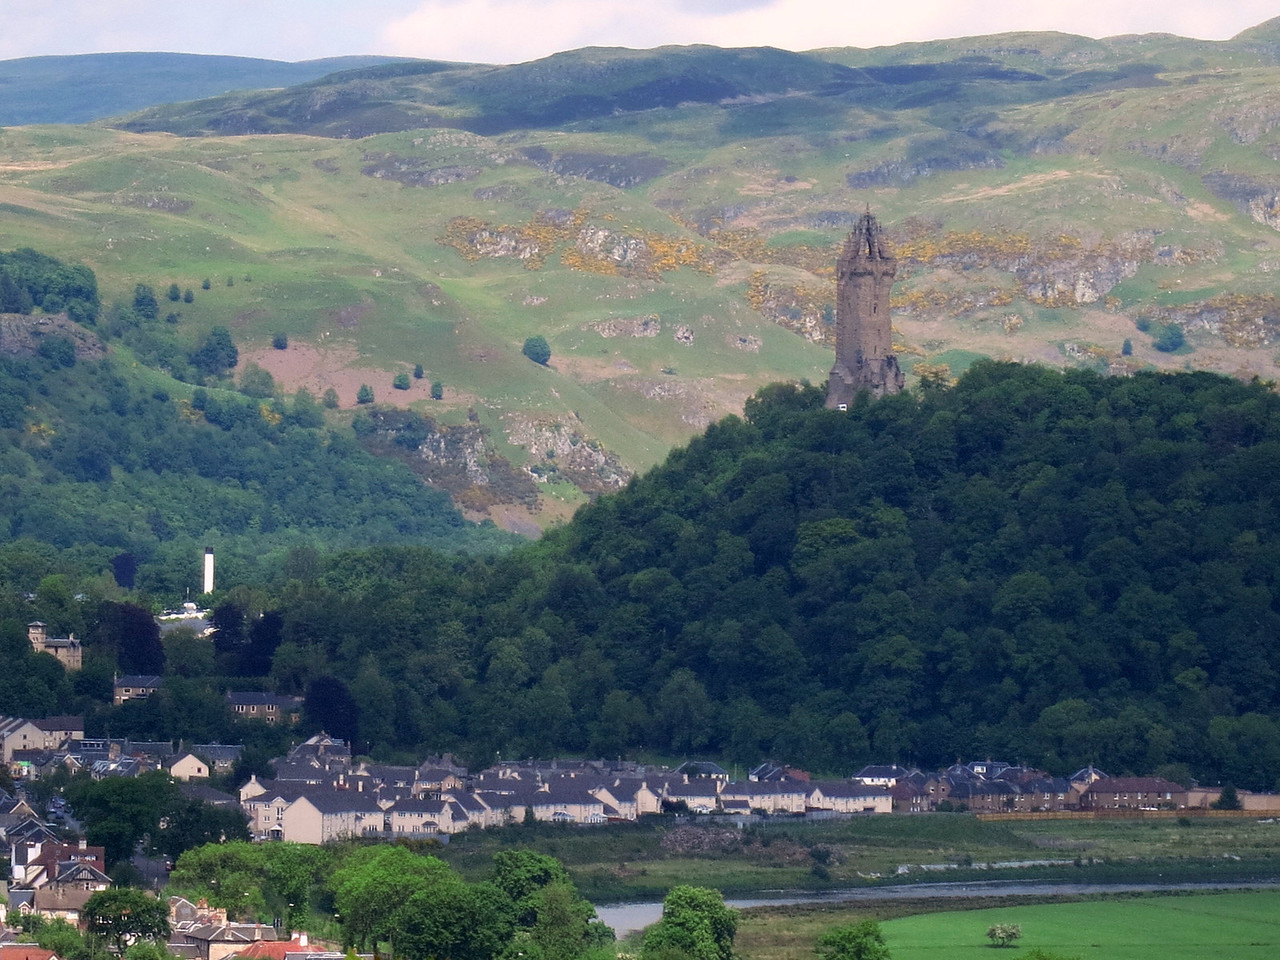 Monument to William Wallace (Braveheart). Constructed in the 1860s.